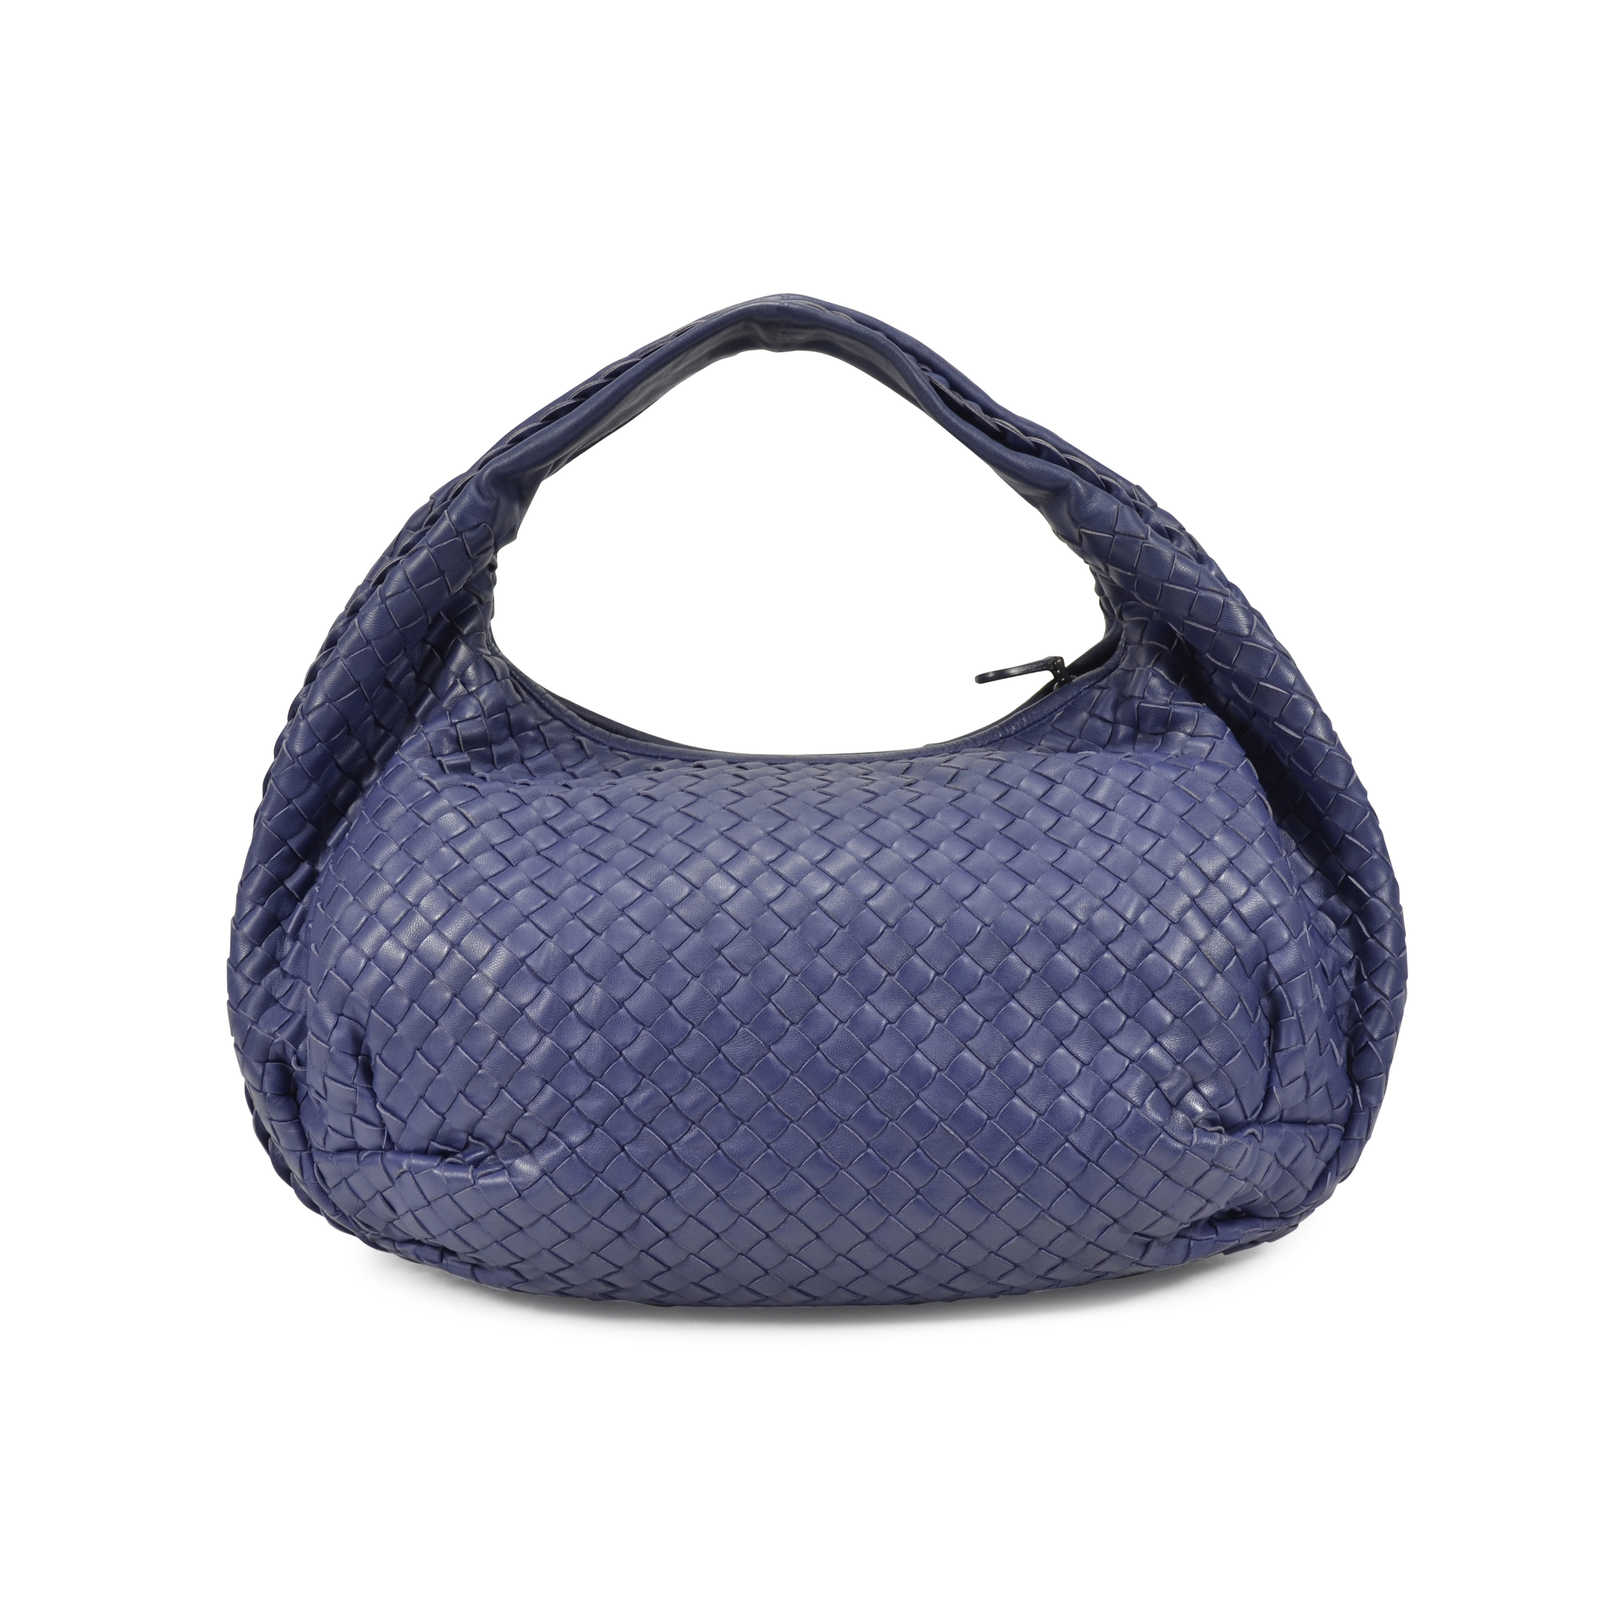 221c01554c ... Authentic Second Hand Bottega Veneta Intrecciato Leather Weave Hobo Bag  (PSS-021-00008 ...